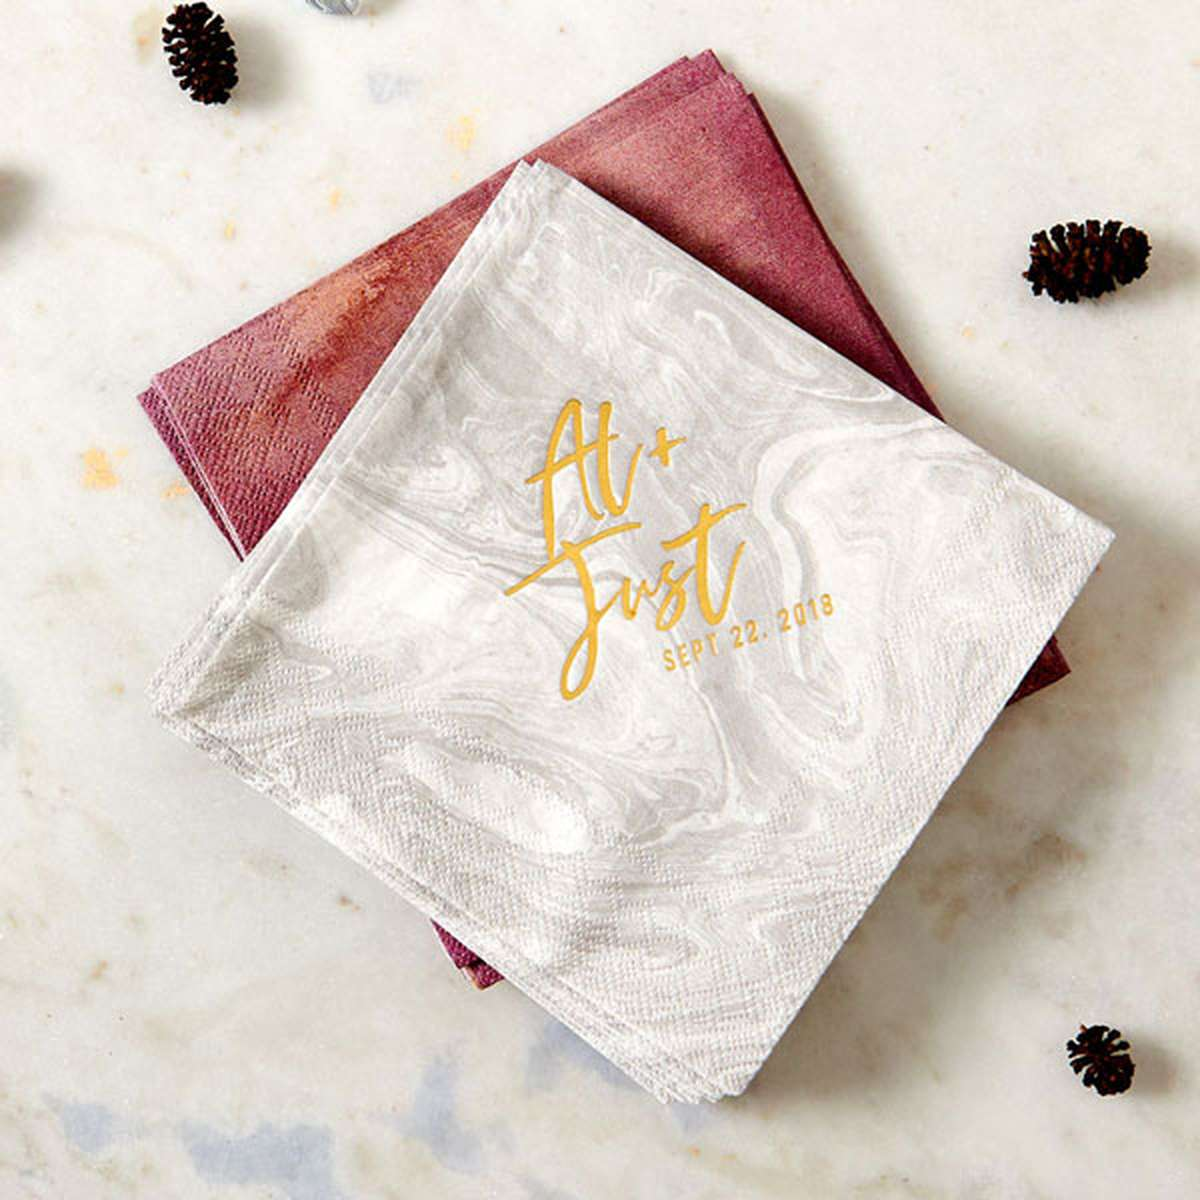 Personalized Water Color Beverage Napkins